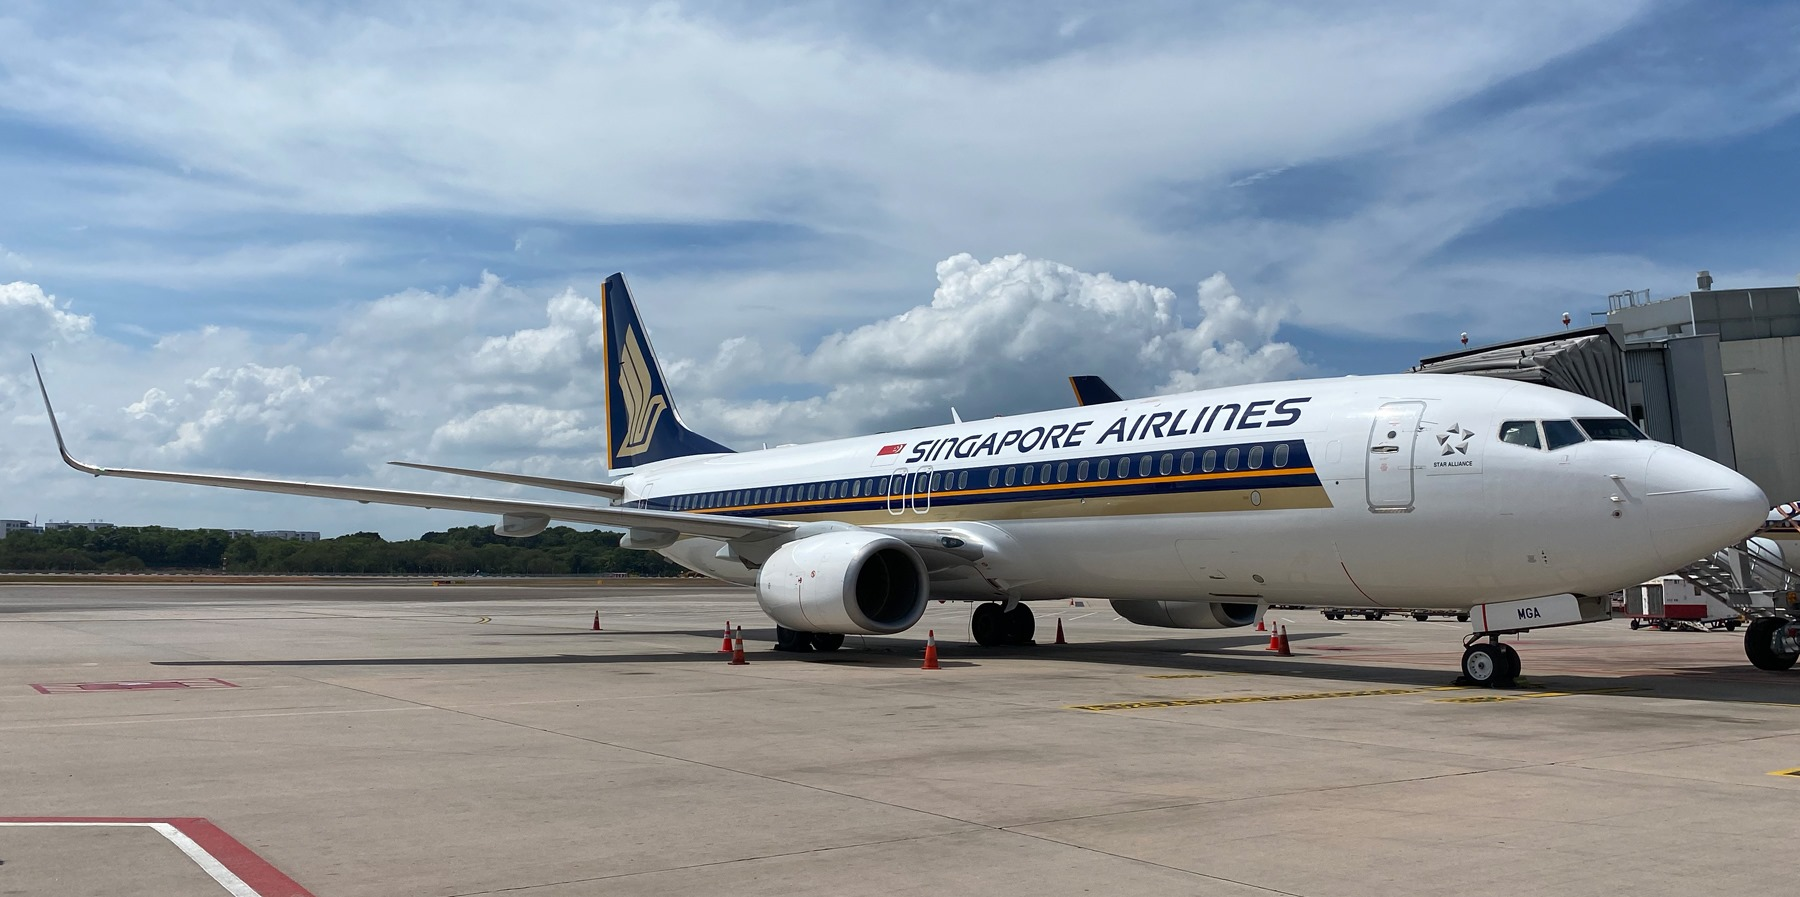 Photo courtesy: Facebook/Singapore Airlines